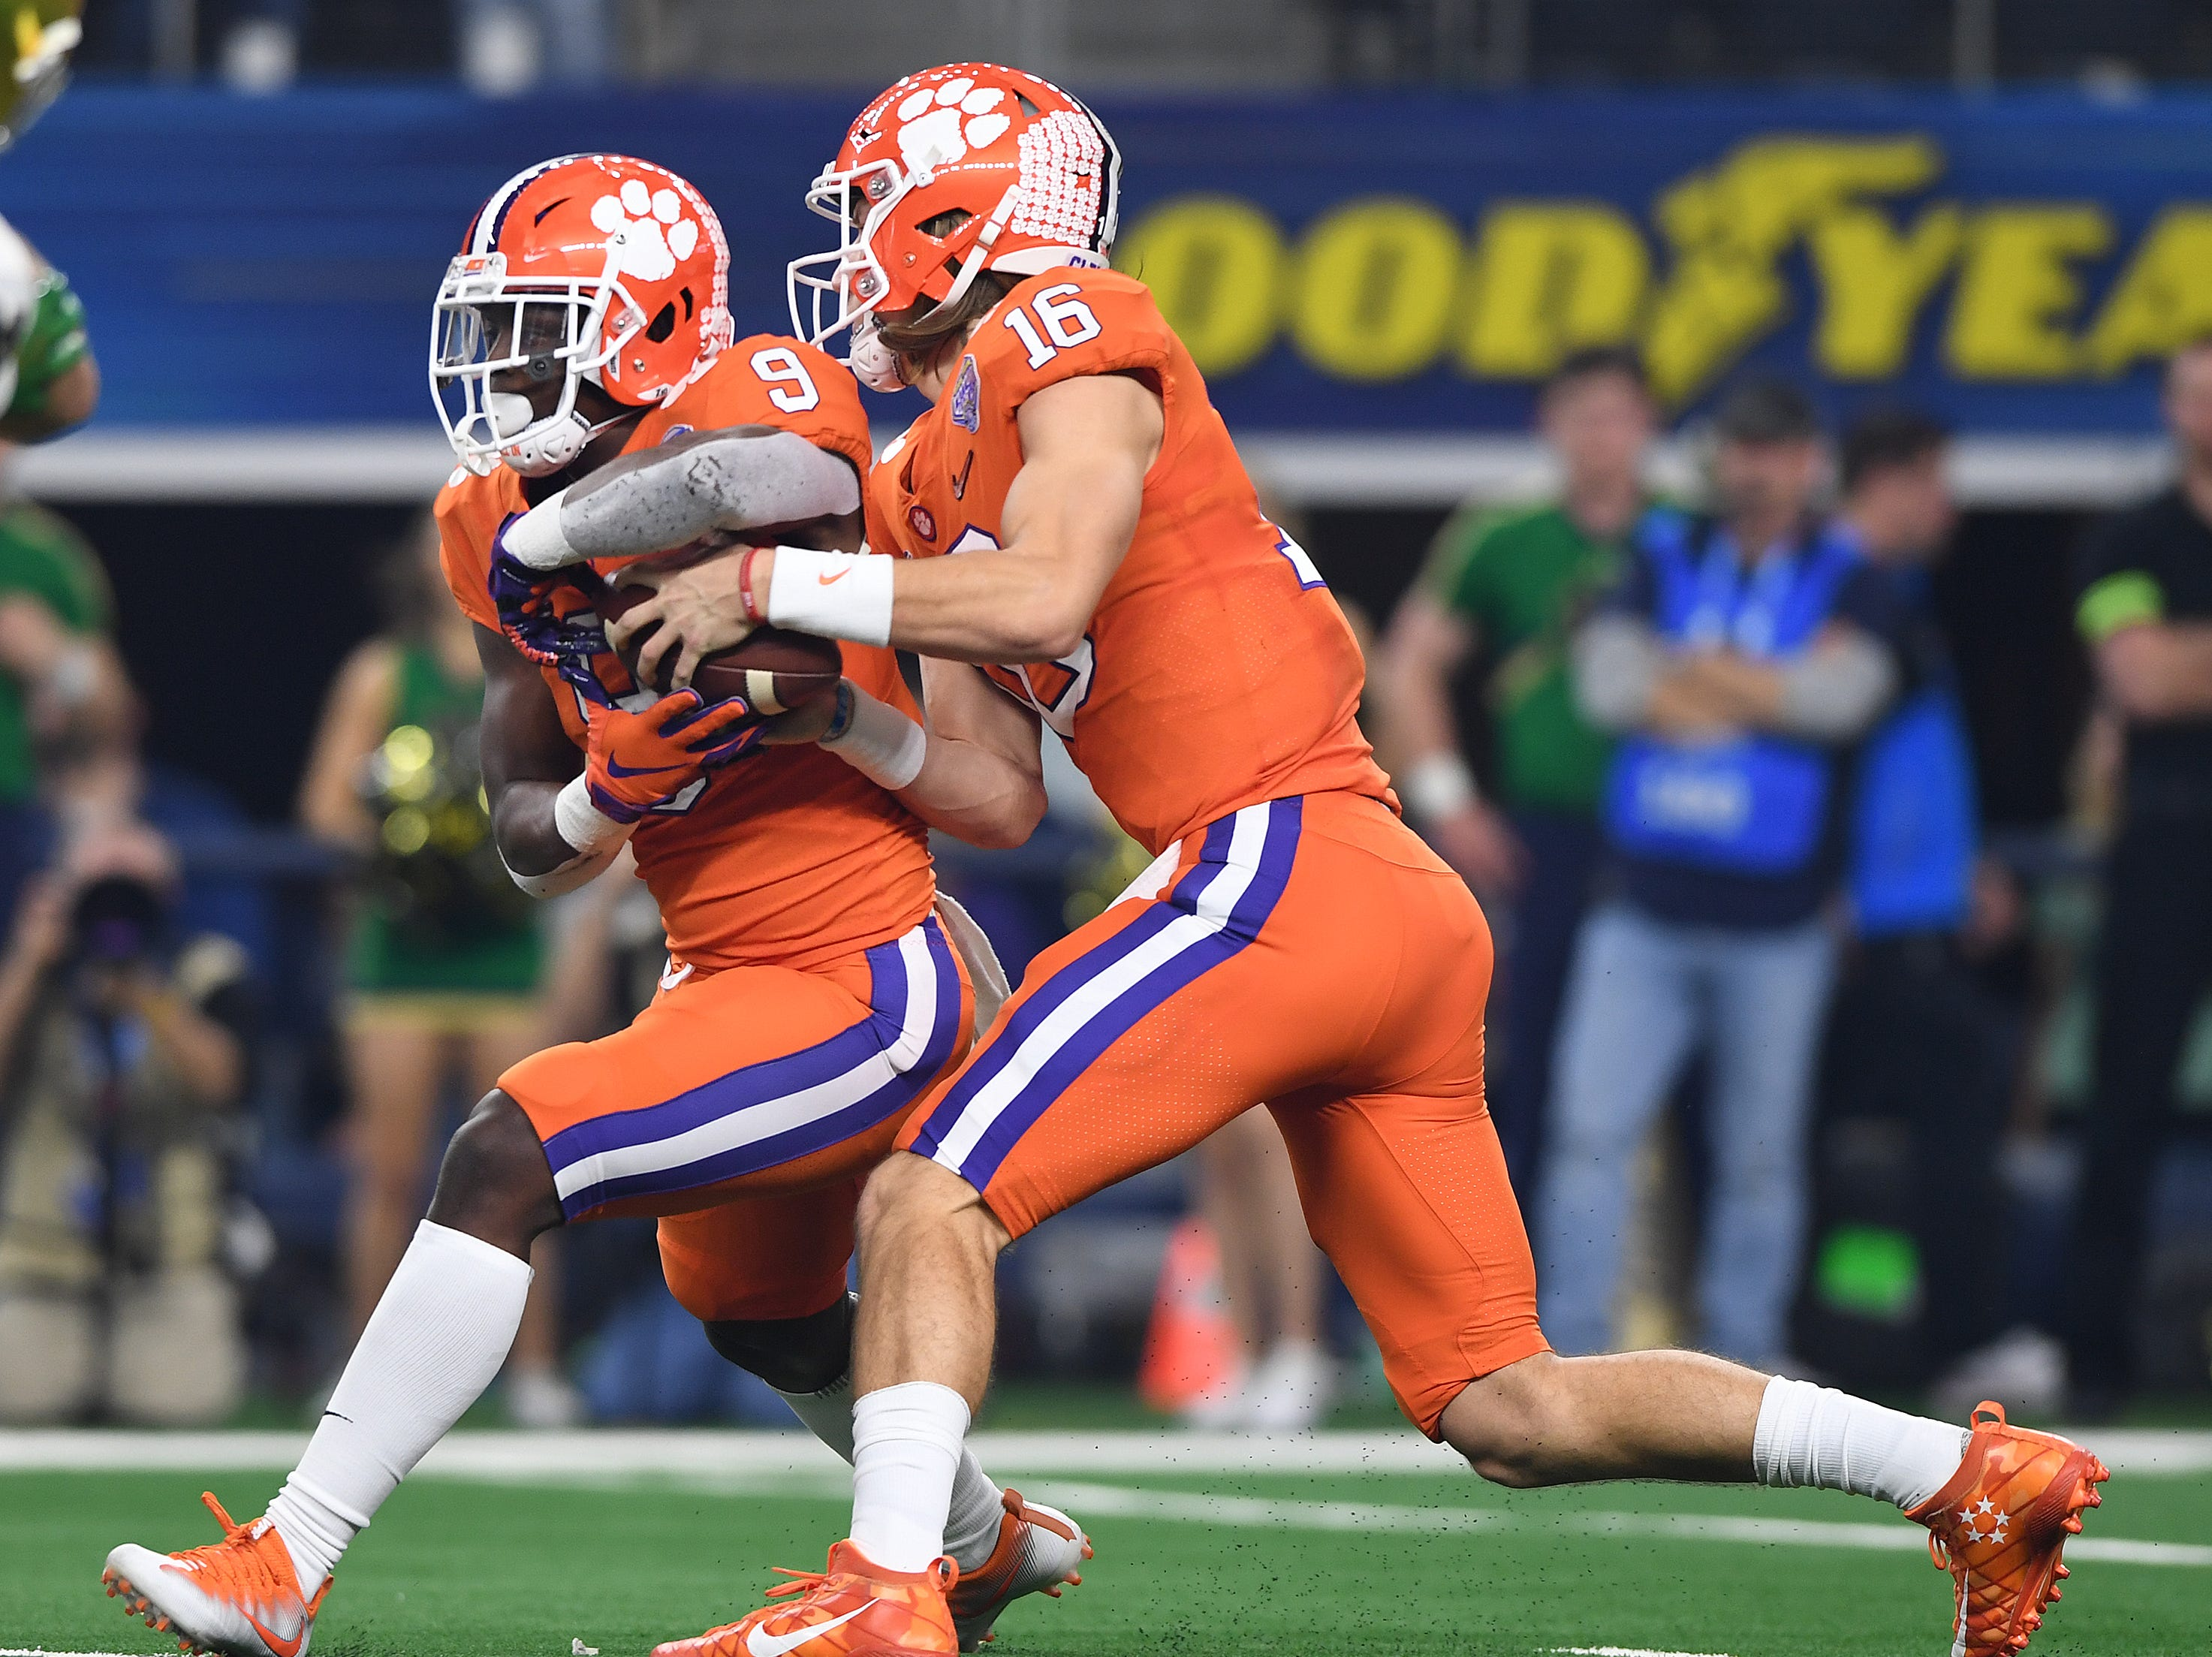 Clemson quarterback Trevor Lawrence (16) pulls the ball from running back Travis Etienne (9) while playing Notre Dame during the 1st quarter of the Goodyear Cotton Bowl at AT&T stadium in Arlington, TX Saturday, December 29, 2018.